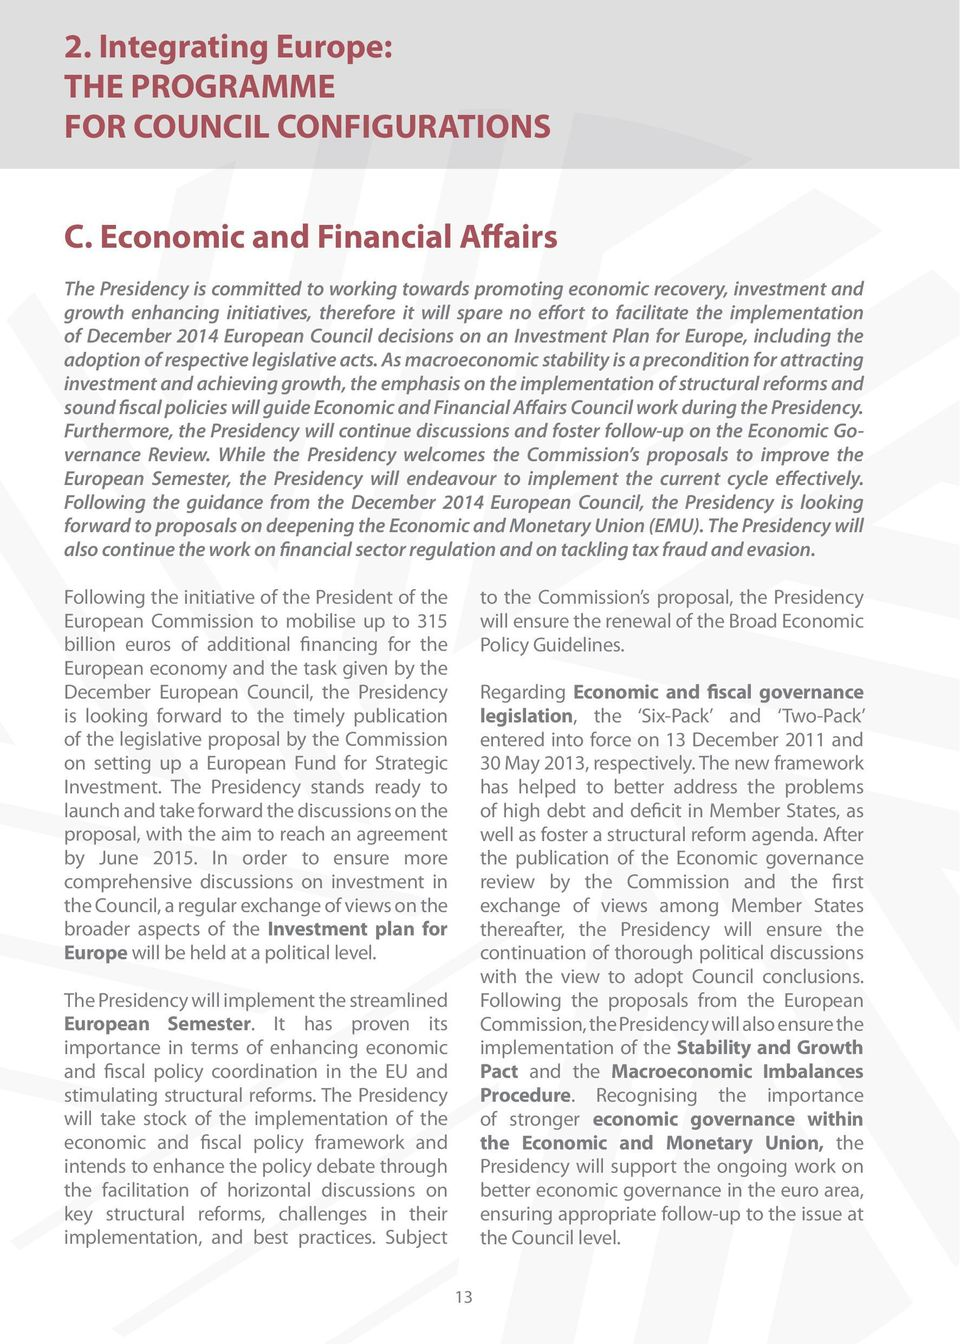 As macroeconomic stability is a precondition for attracting investment and achieving growth, the emphasis on the implementation of structural reforms and sound fiscal policies will guide Economic and